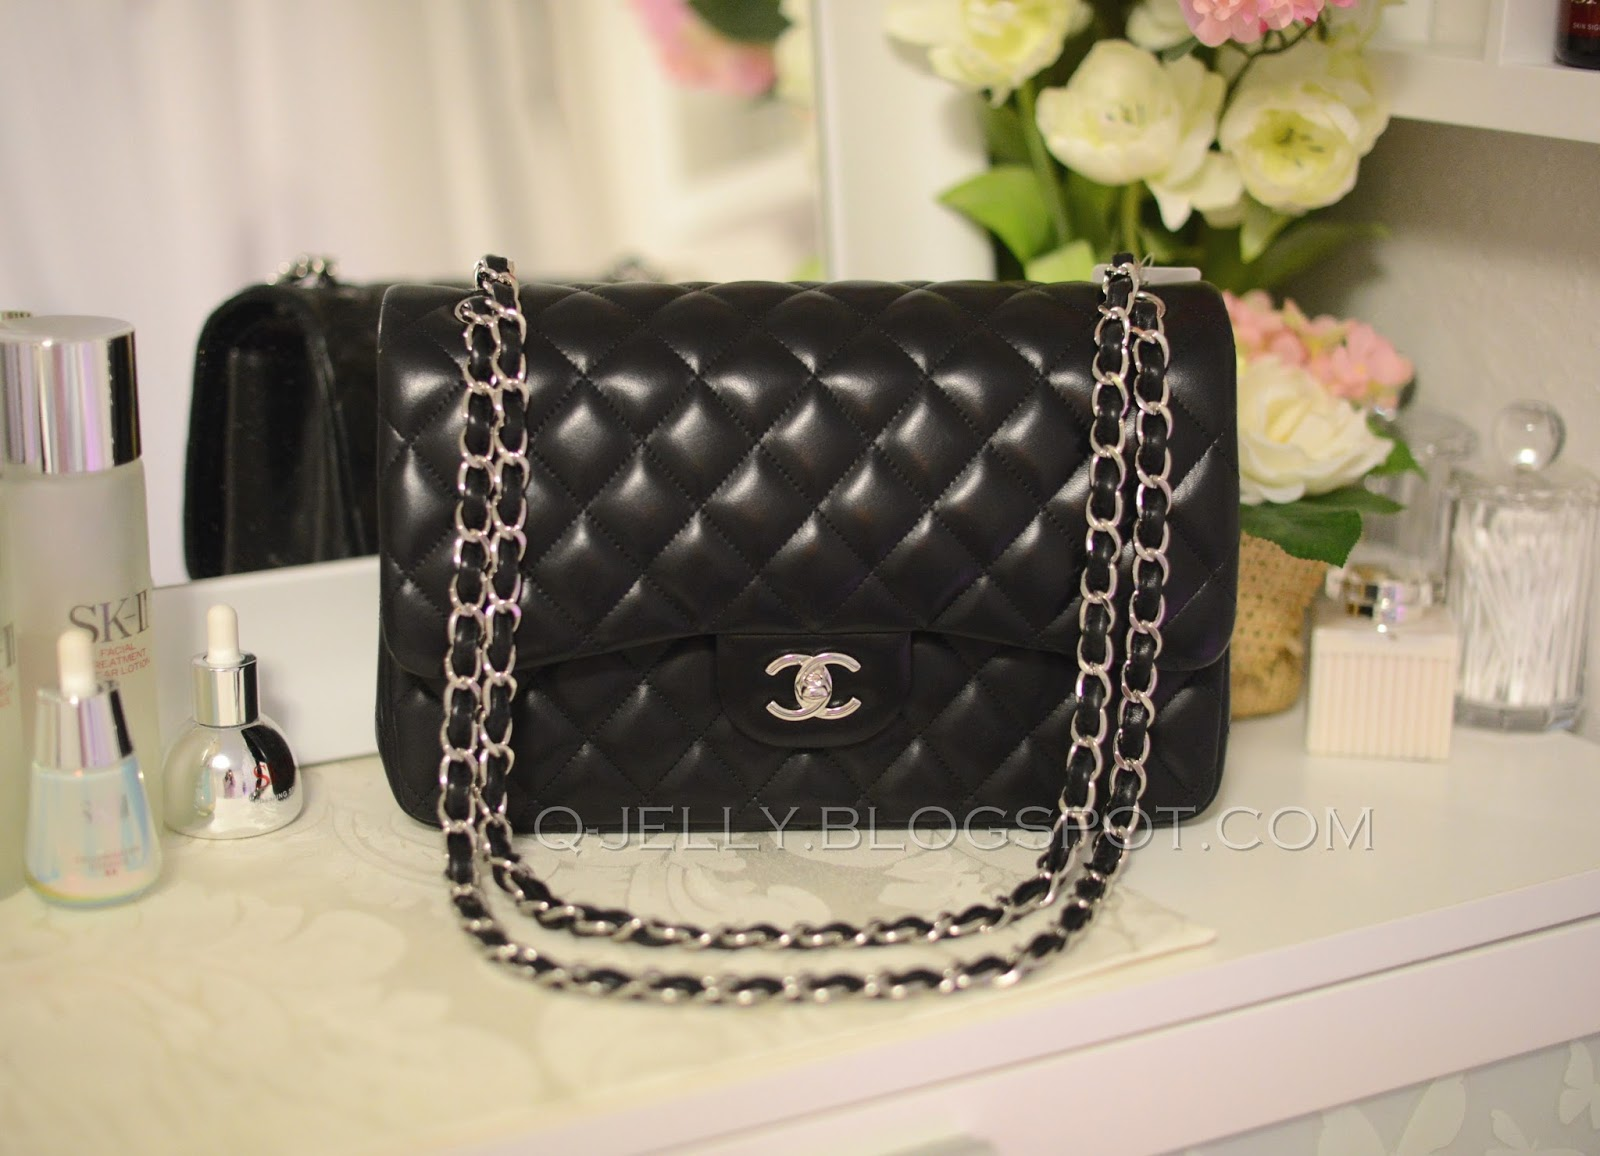 Both Bags Are Black And Have Silver Hardware Although It Will Look A Bit Goldish With Flash